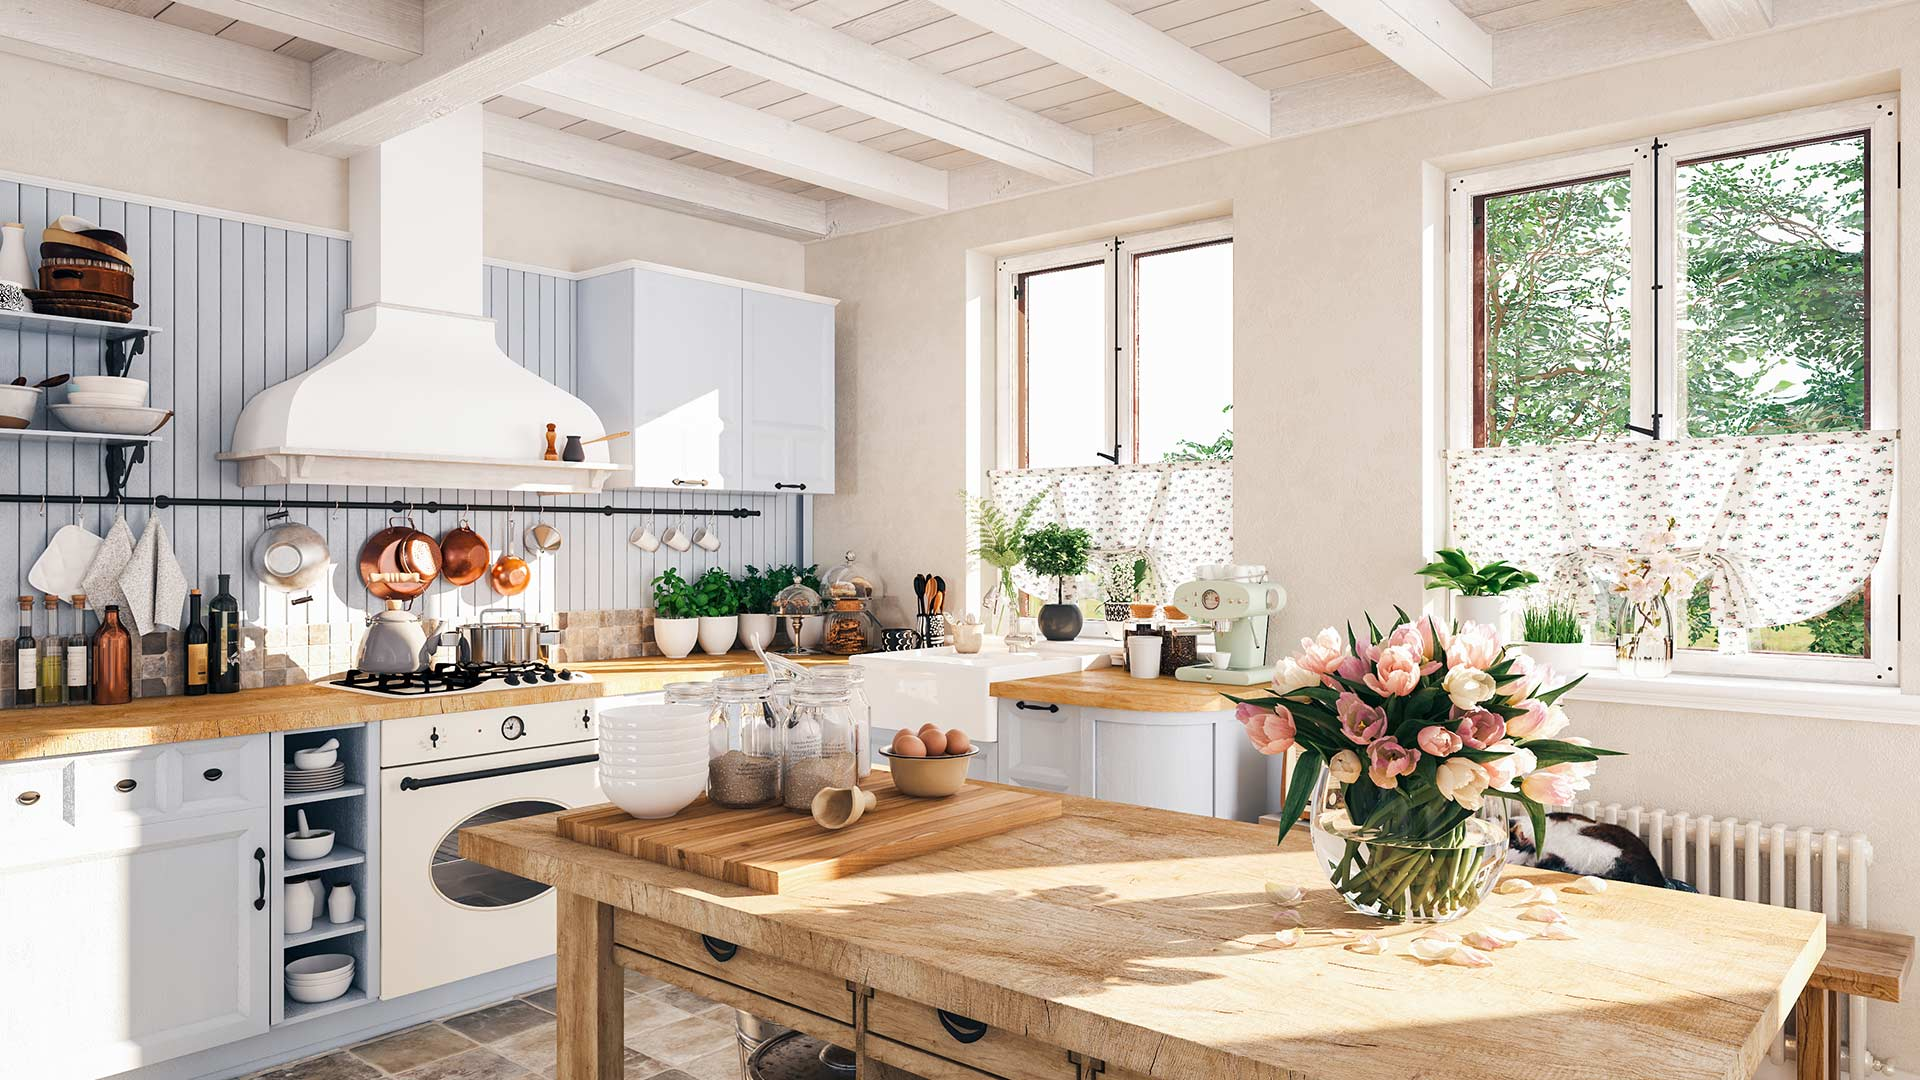 3 Outdated Kitchen Trends Making a Comeback